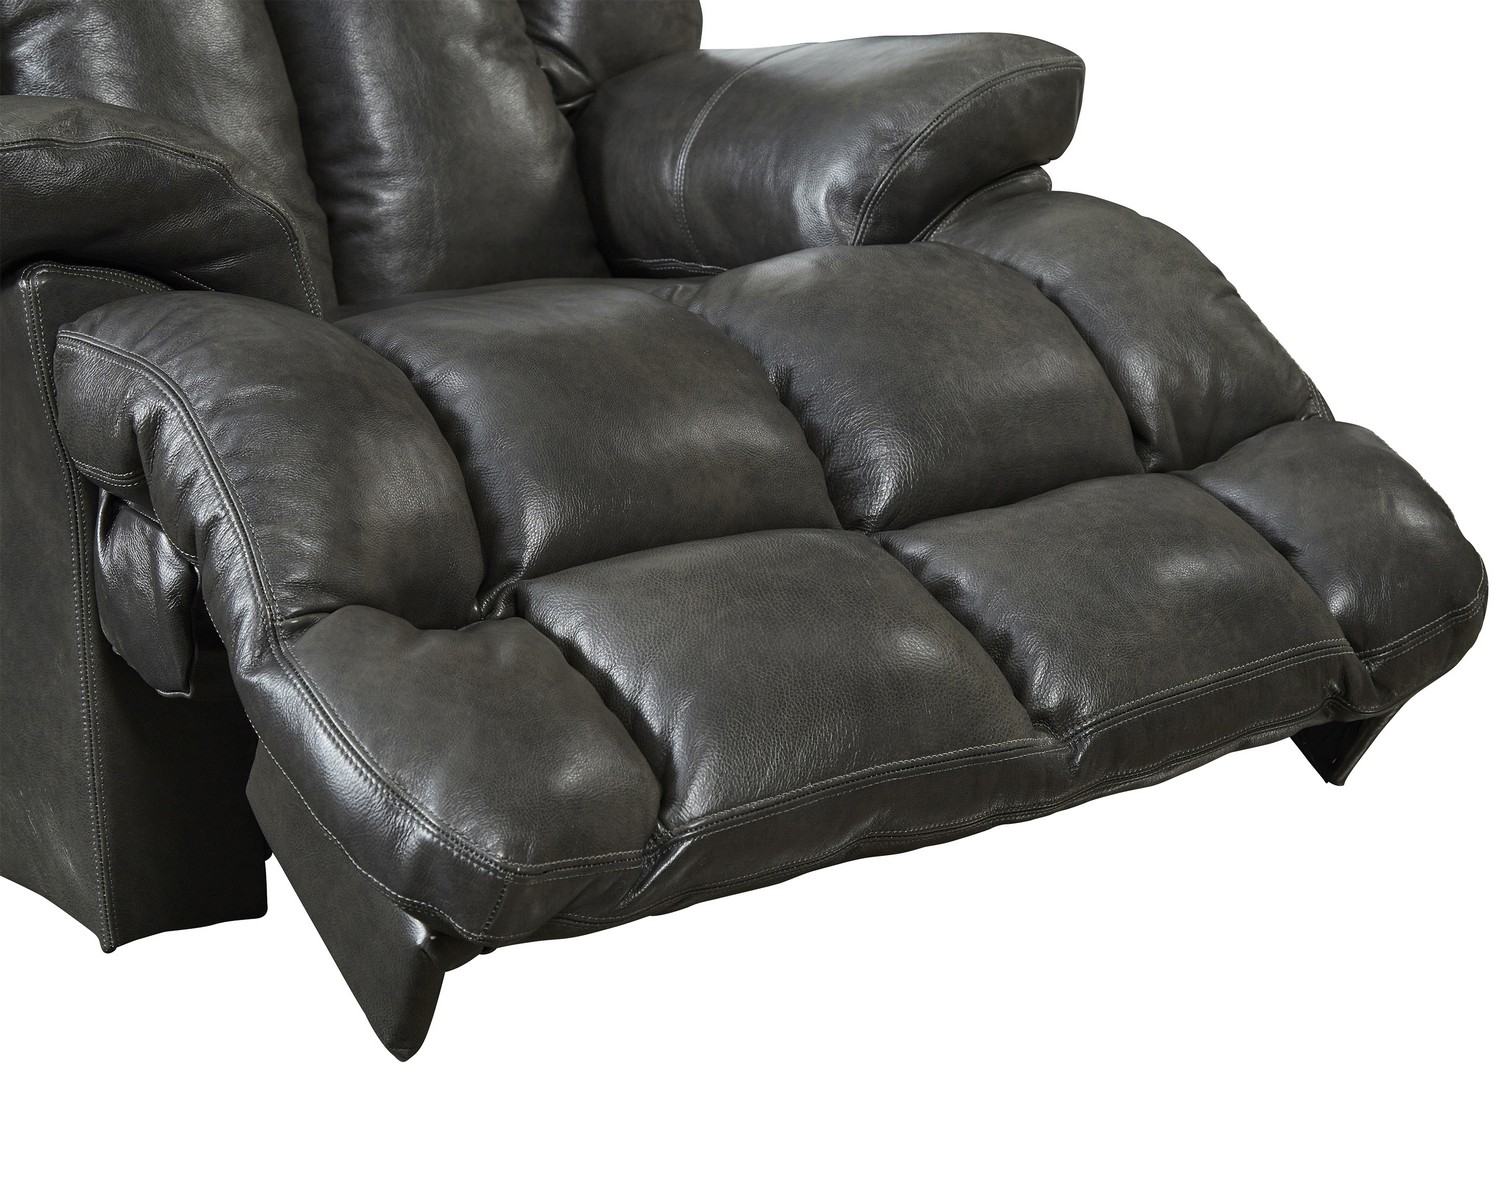 CatNapper Victor Top Grain Leather Chaise Rocker Recliner - Steel  sc 1 st  Homelement.com : chaise rocker - Sectionals, Sofas & Couches